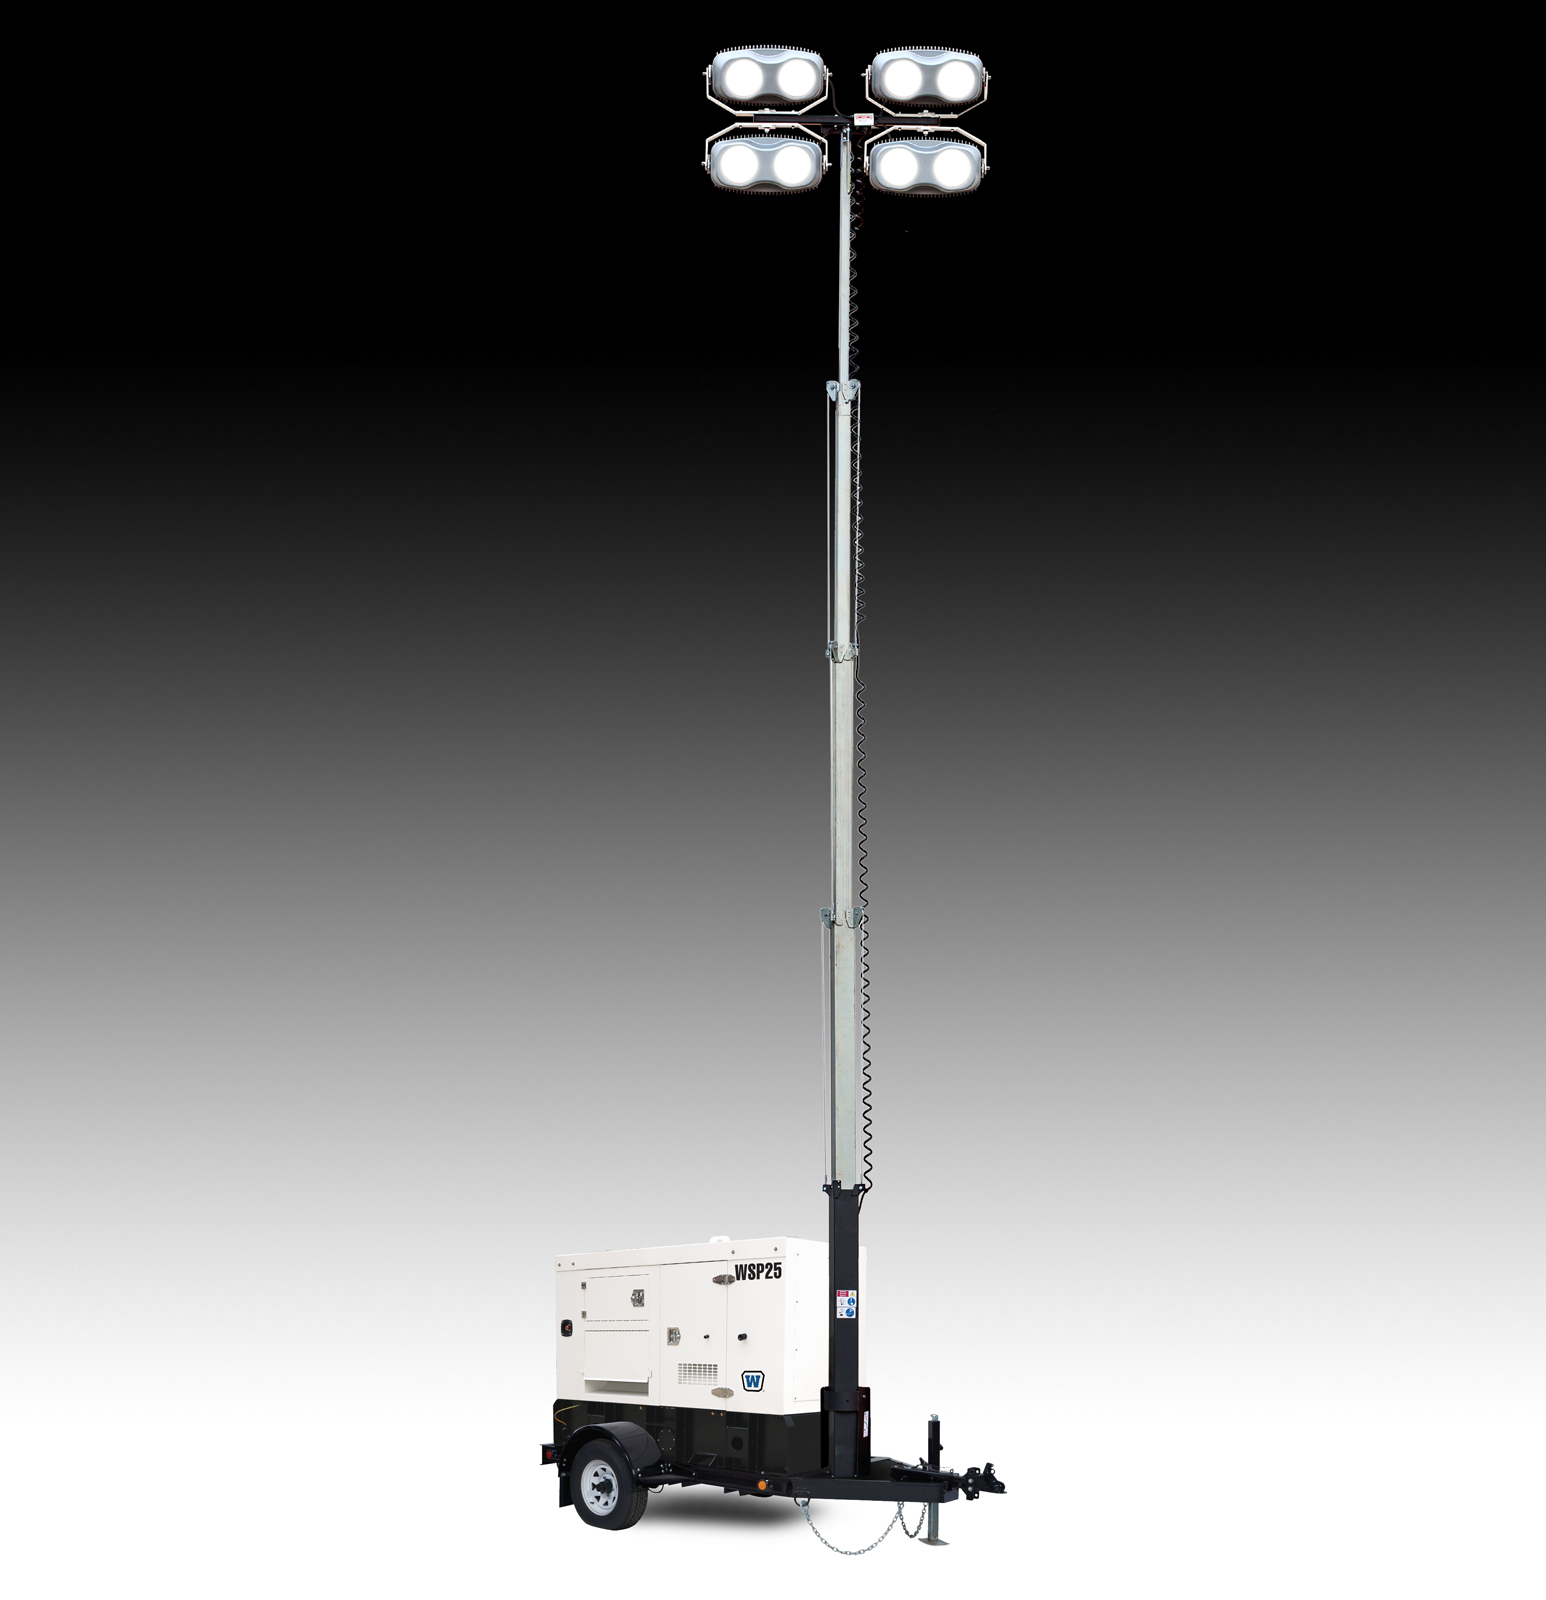 20kW Light Tower